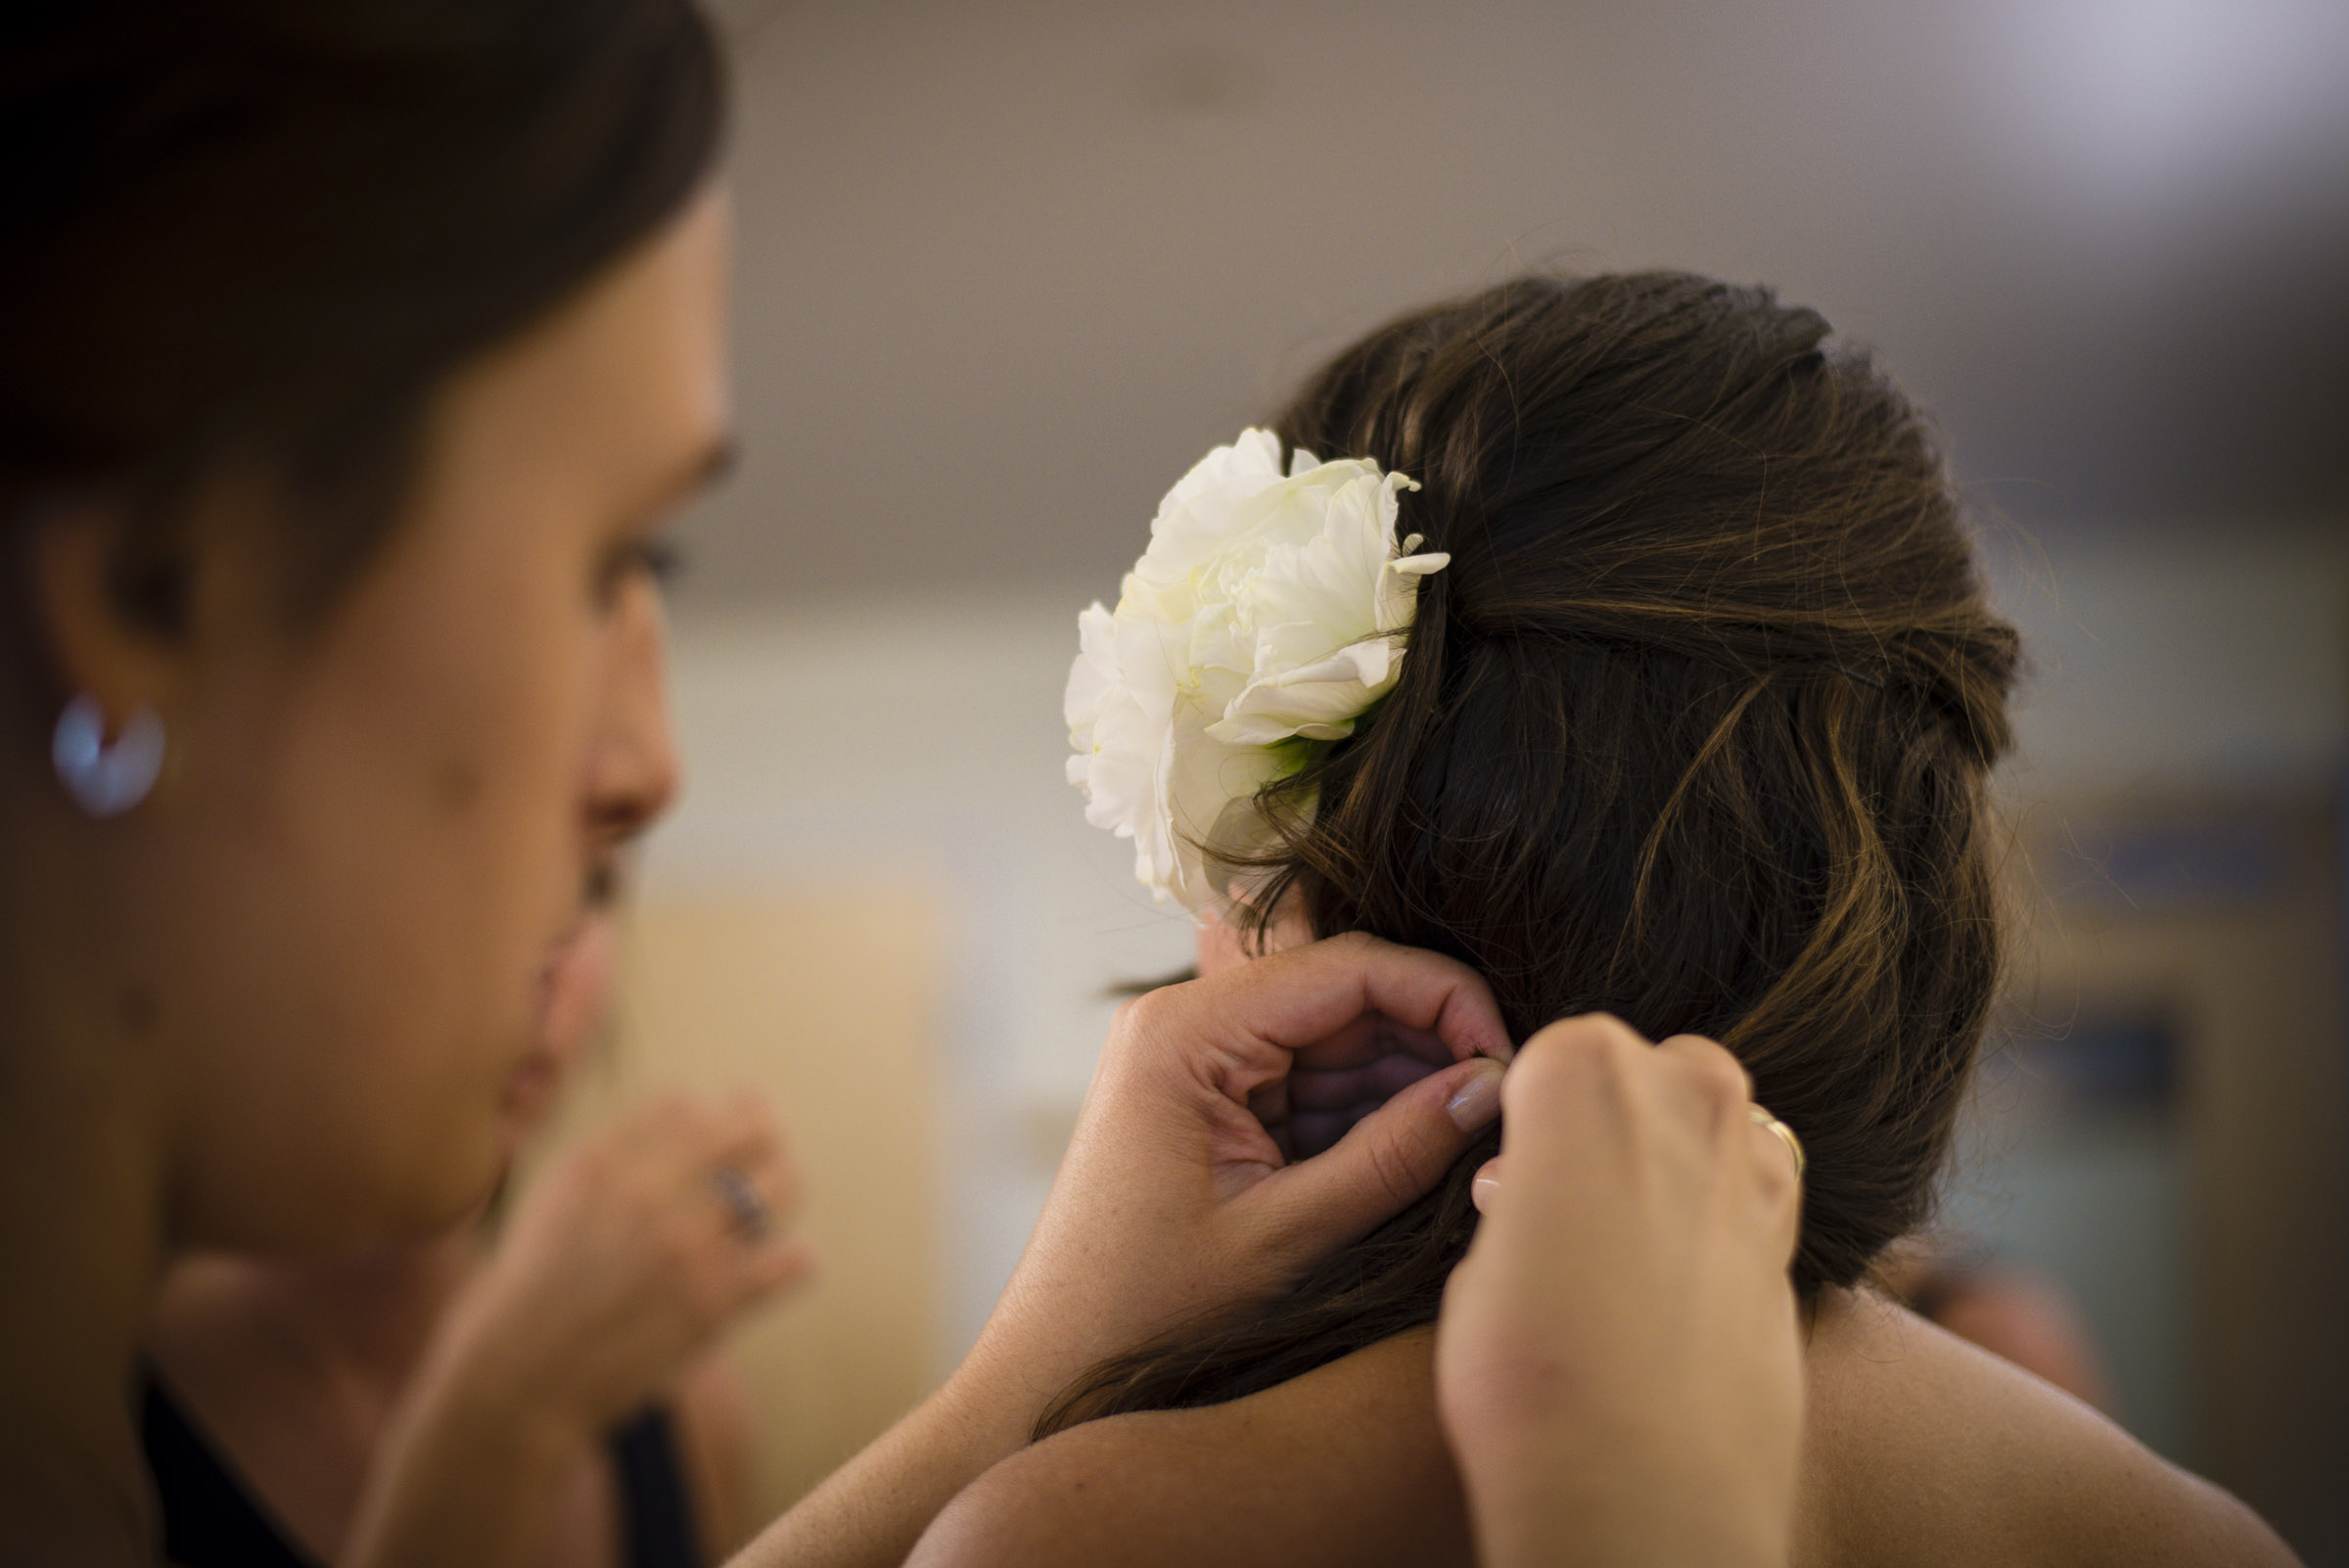 08232014-Chris&VanessaWedding-JuliaLuckettPhotography-94